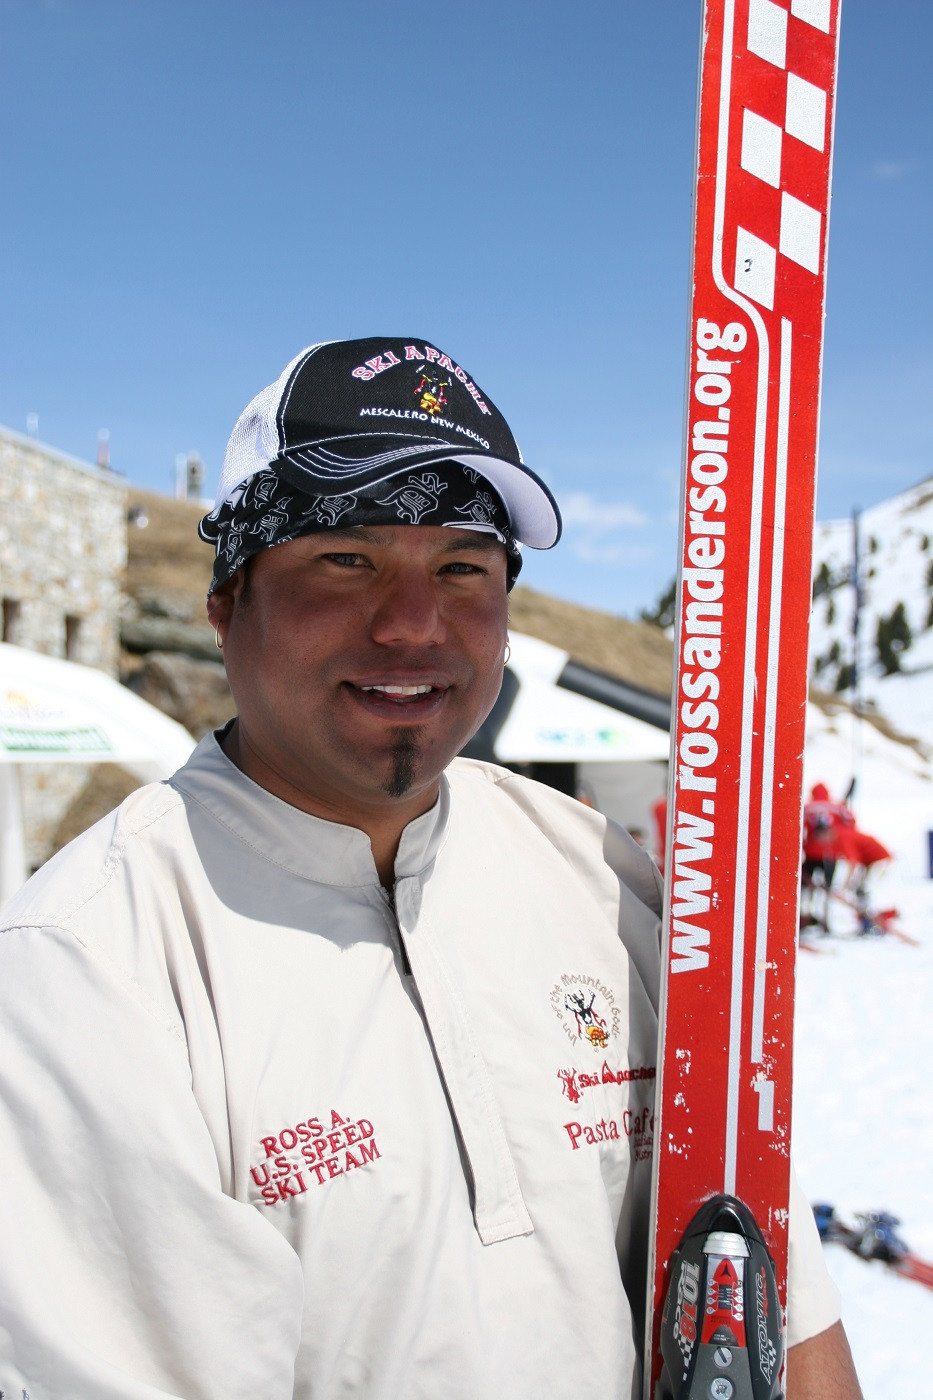 Ross Anderson skier